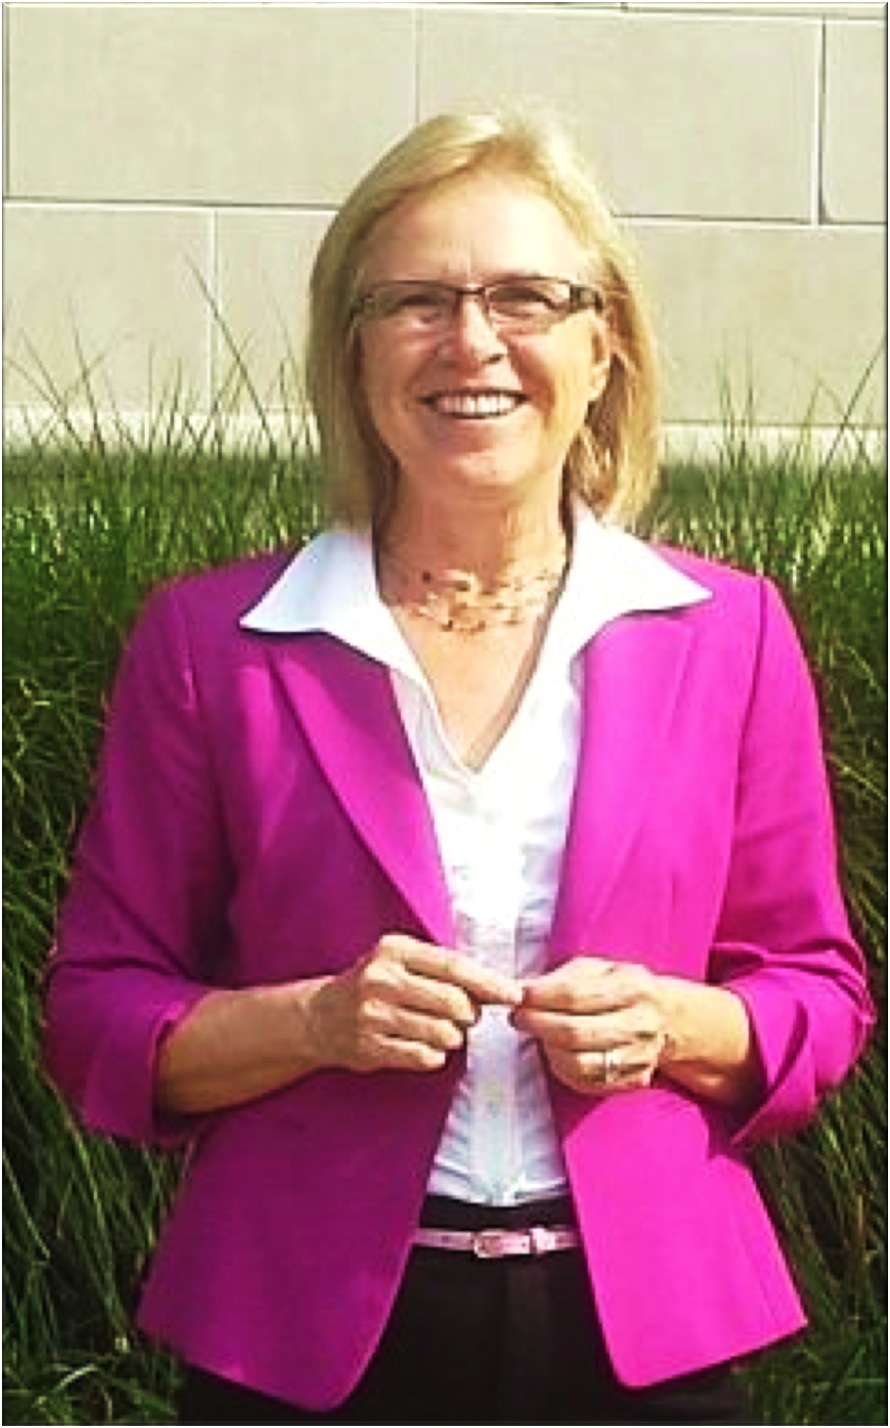 jillkonrath